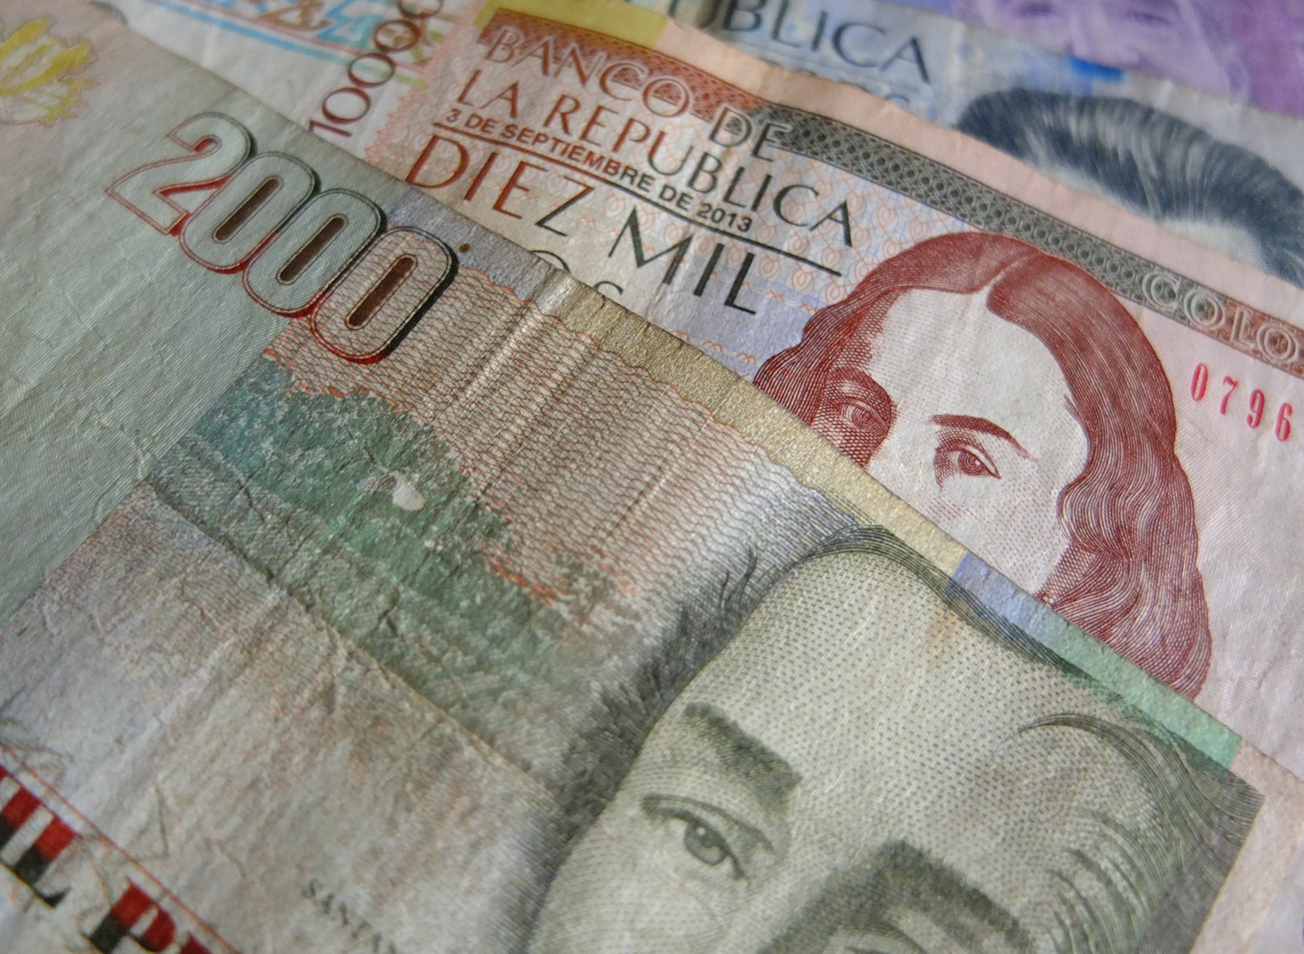 Fears That Turkey S Lira Crisis Will Drag Down The Currencies Of Emerging Markets Compounded By Falling Global Oil Prices Pushed Colombian Peso To